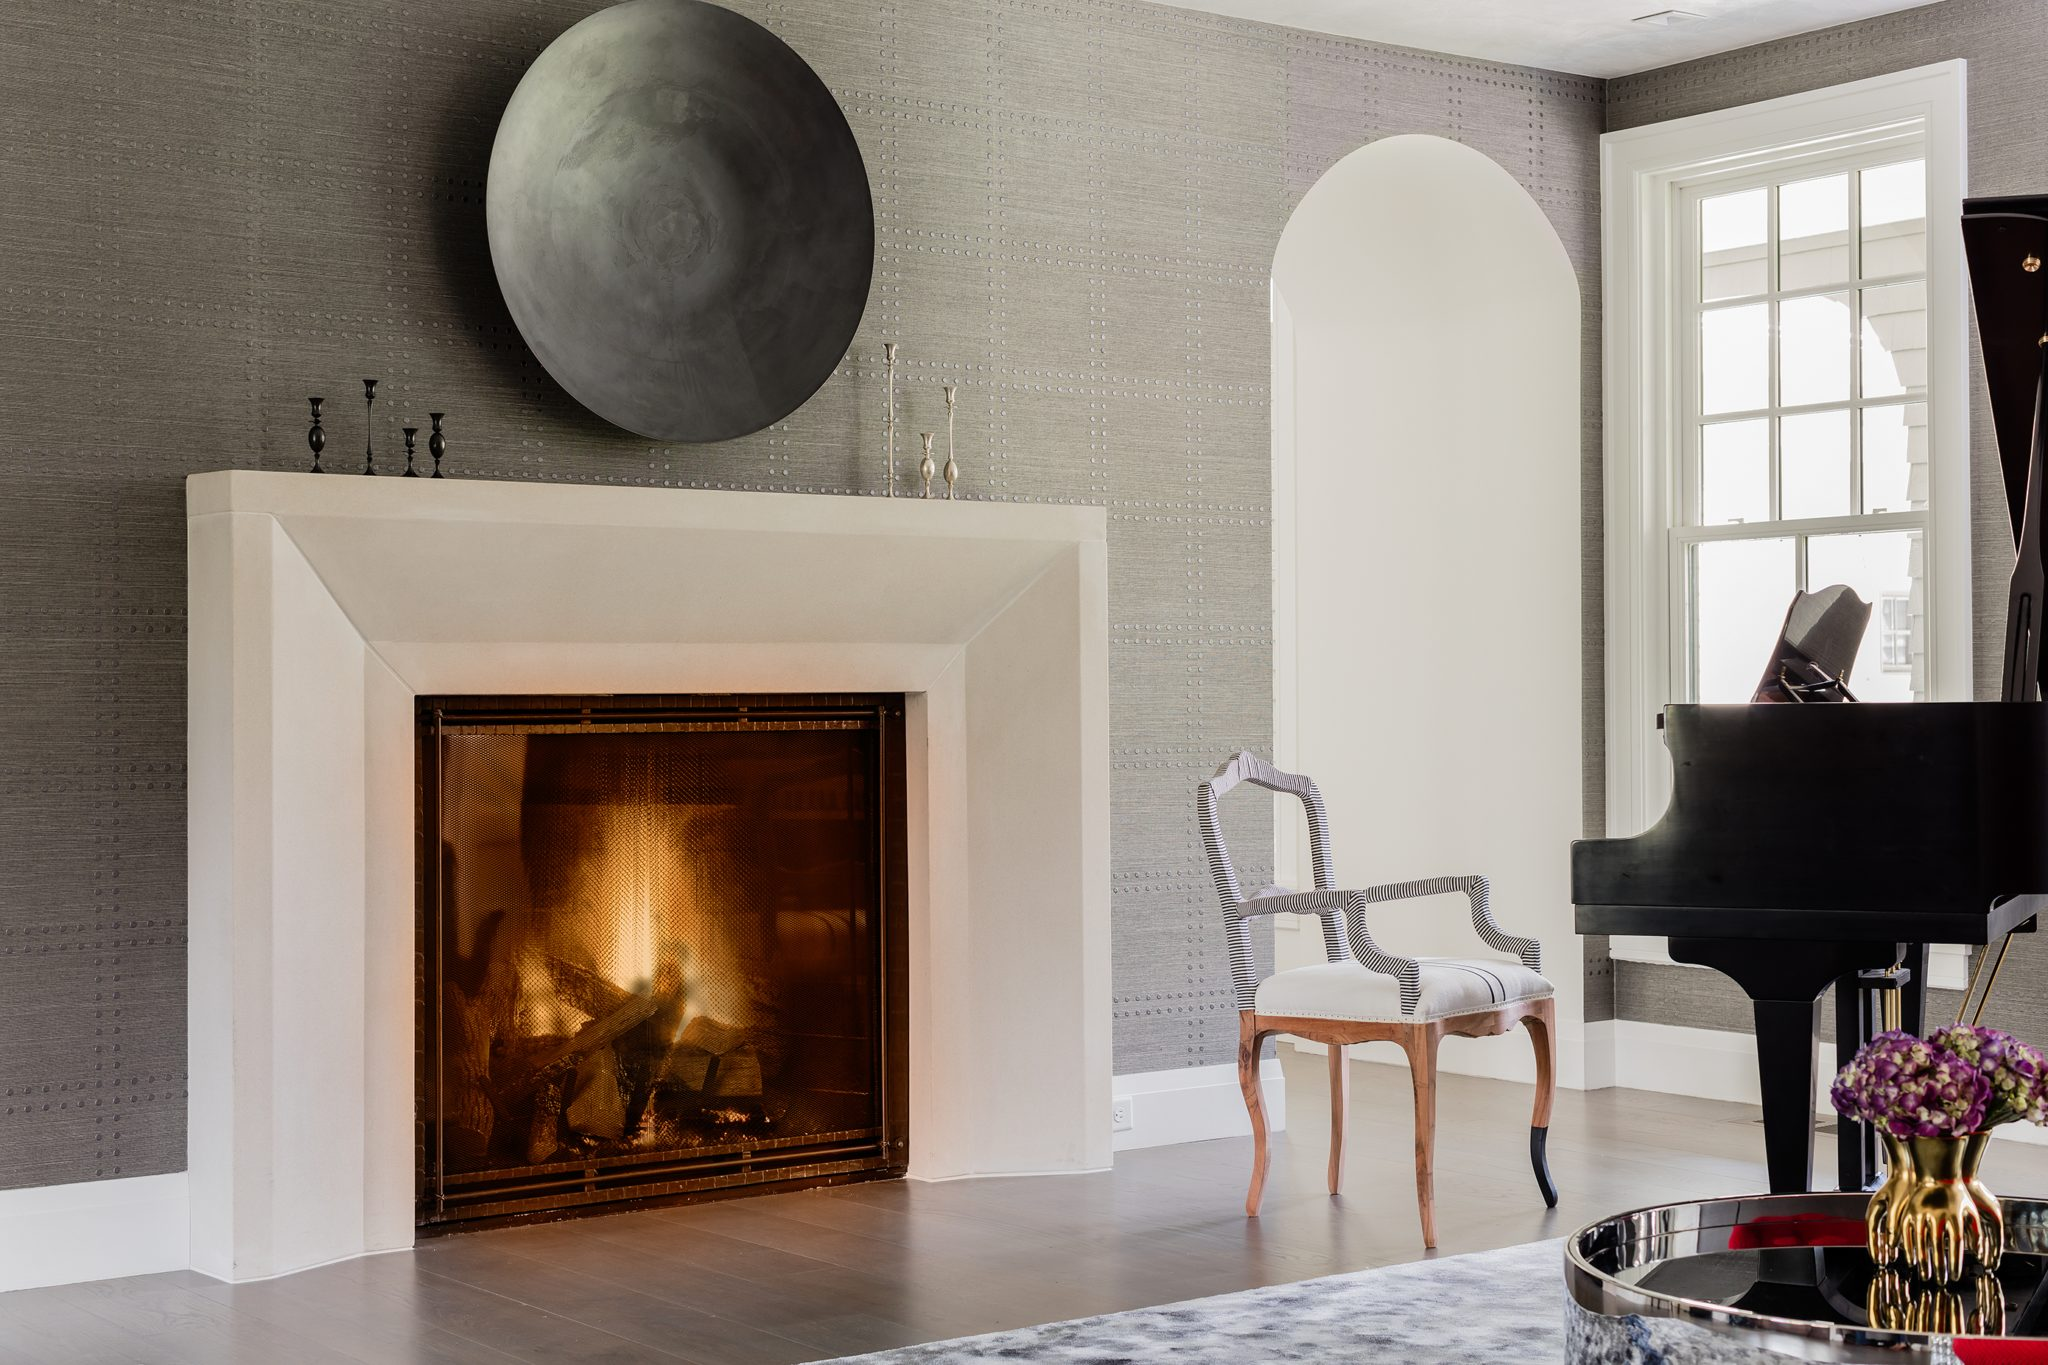 Modern Farm House - Music Room with a cast concrete fireplace by Atsu Gunther Design